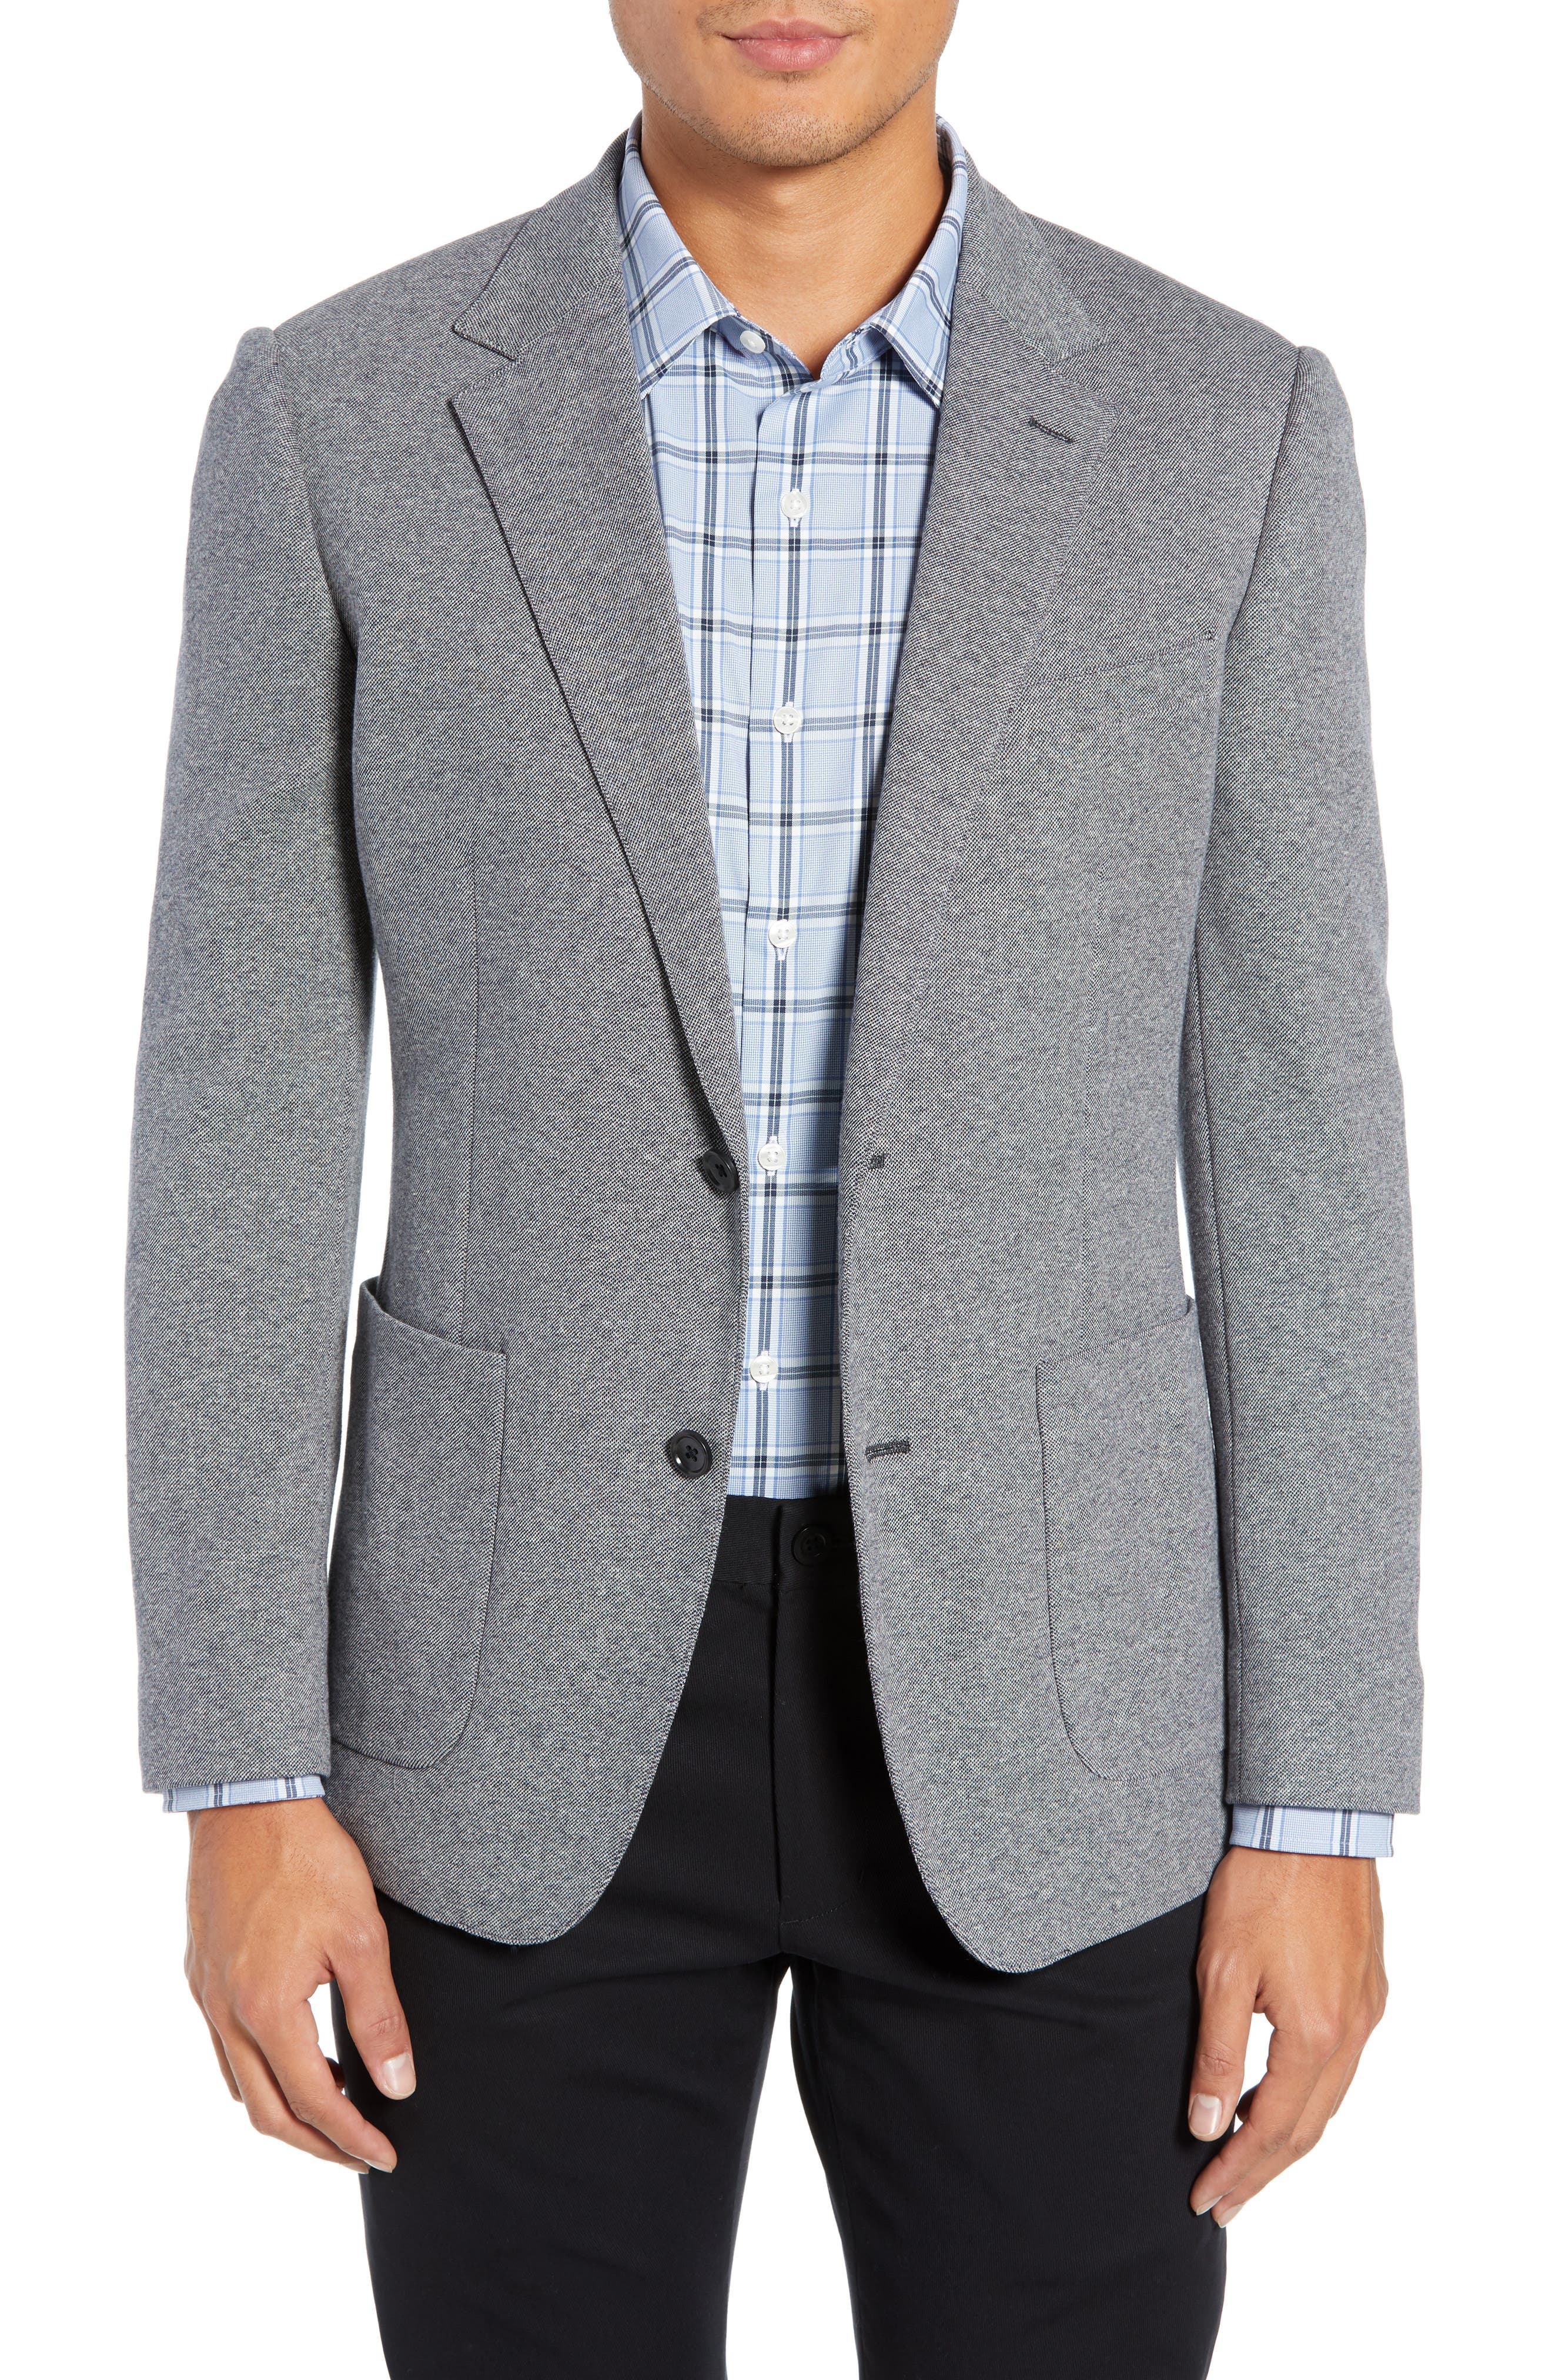 Jetsetter Trim Fit Knit Cotton Sport Coat,                             Main thumbnail 1, color,                             LIGHT GREY